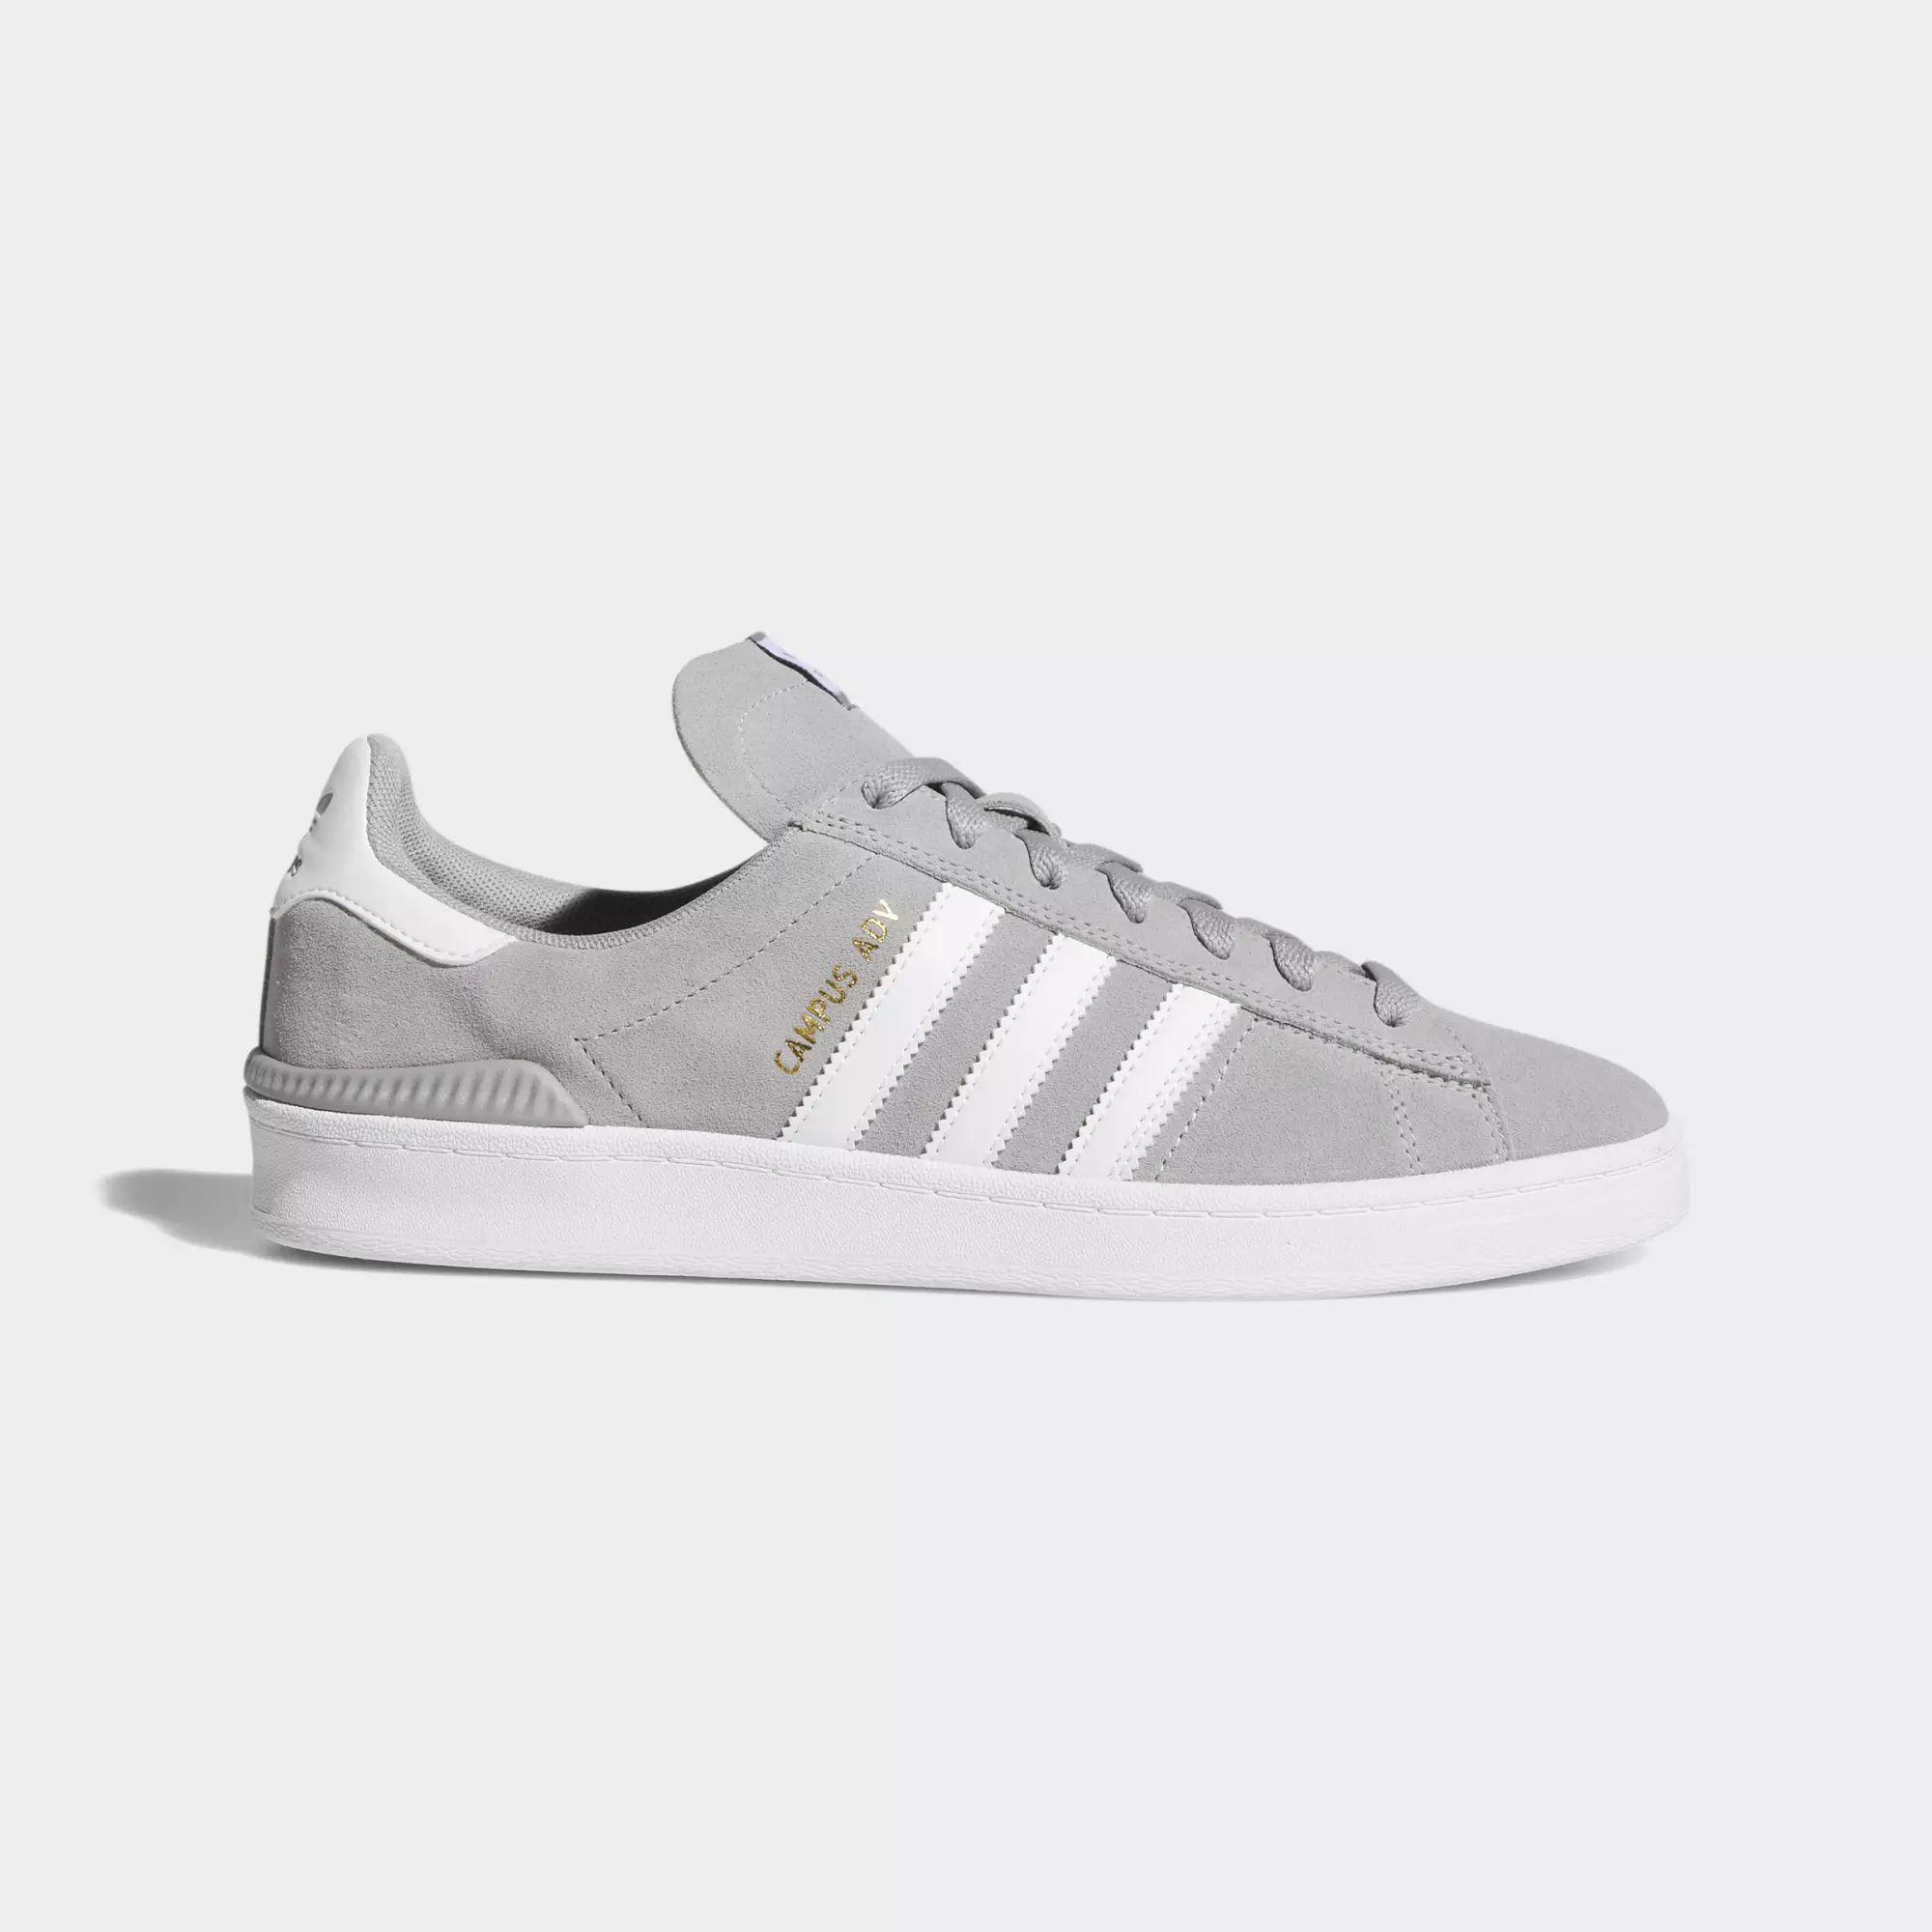 Adidas Campus ADV Shoes - Mgh Solid Grey / Ftwr White / Ftwr White